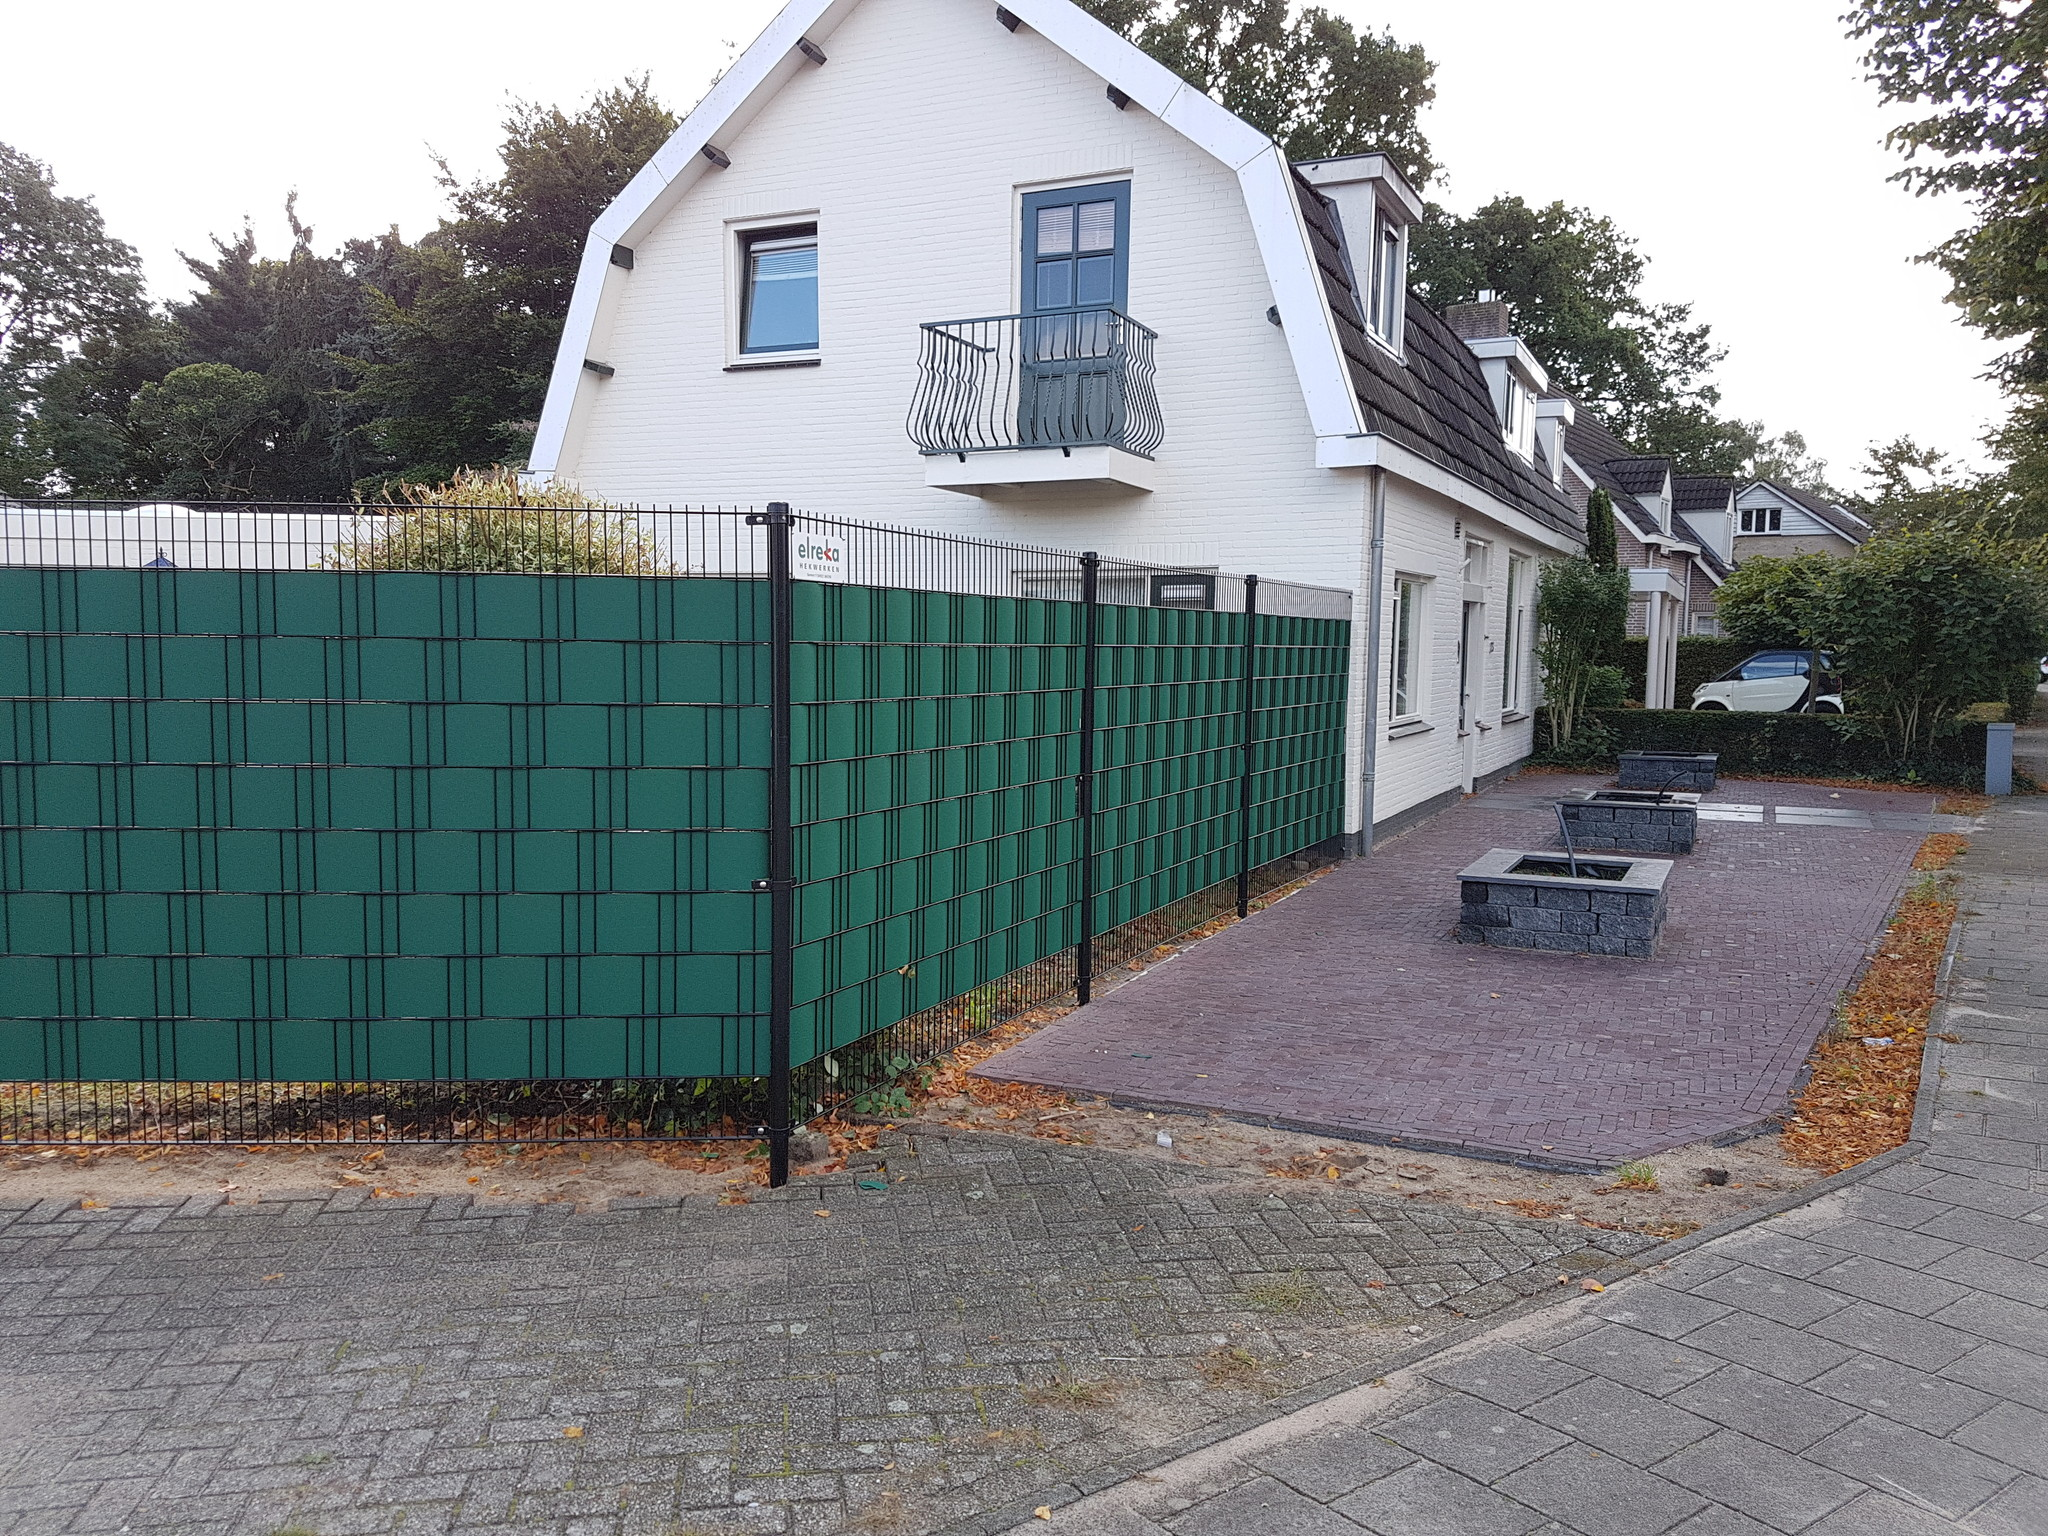 Gipea Easy to fix Vlechtband (FENCE) + 20 montageklemmen